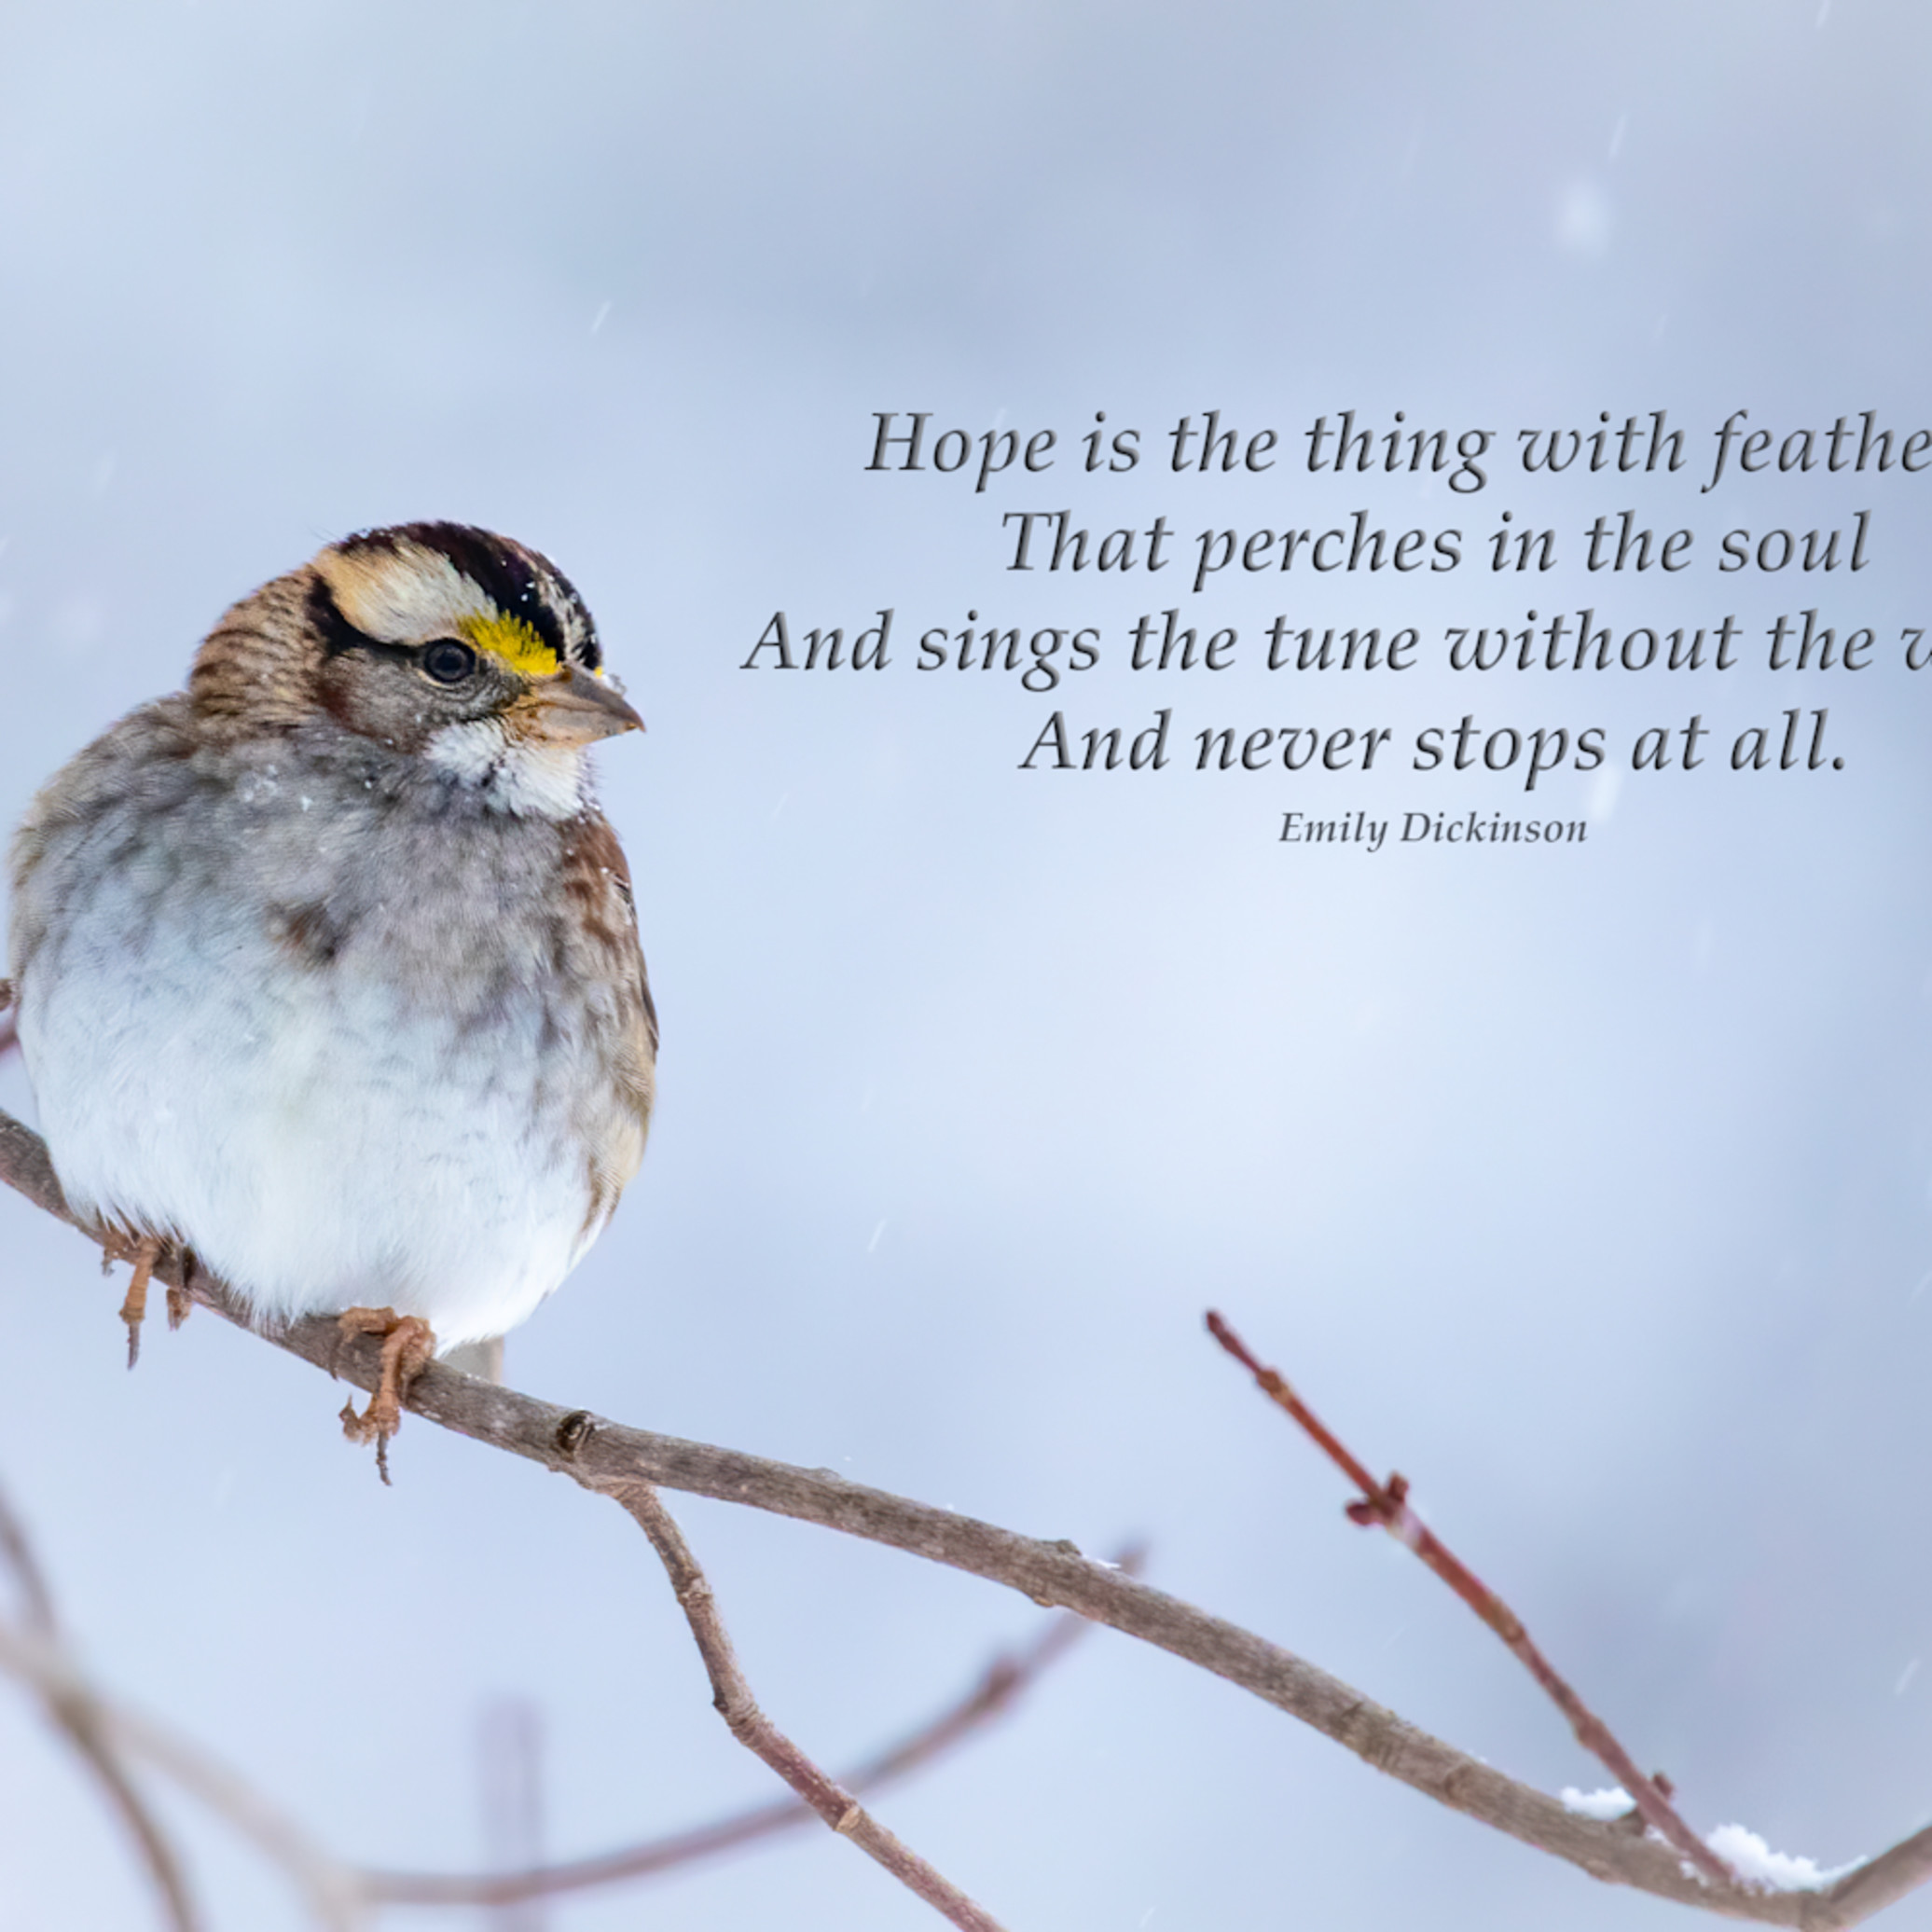 Hope is the thing with feathers czmxor